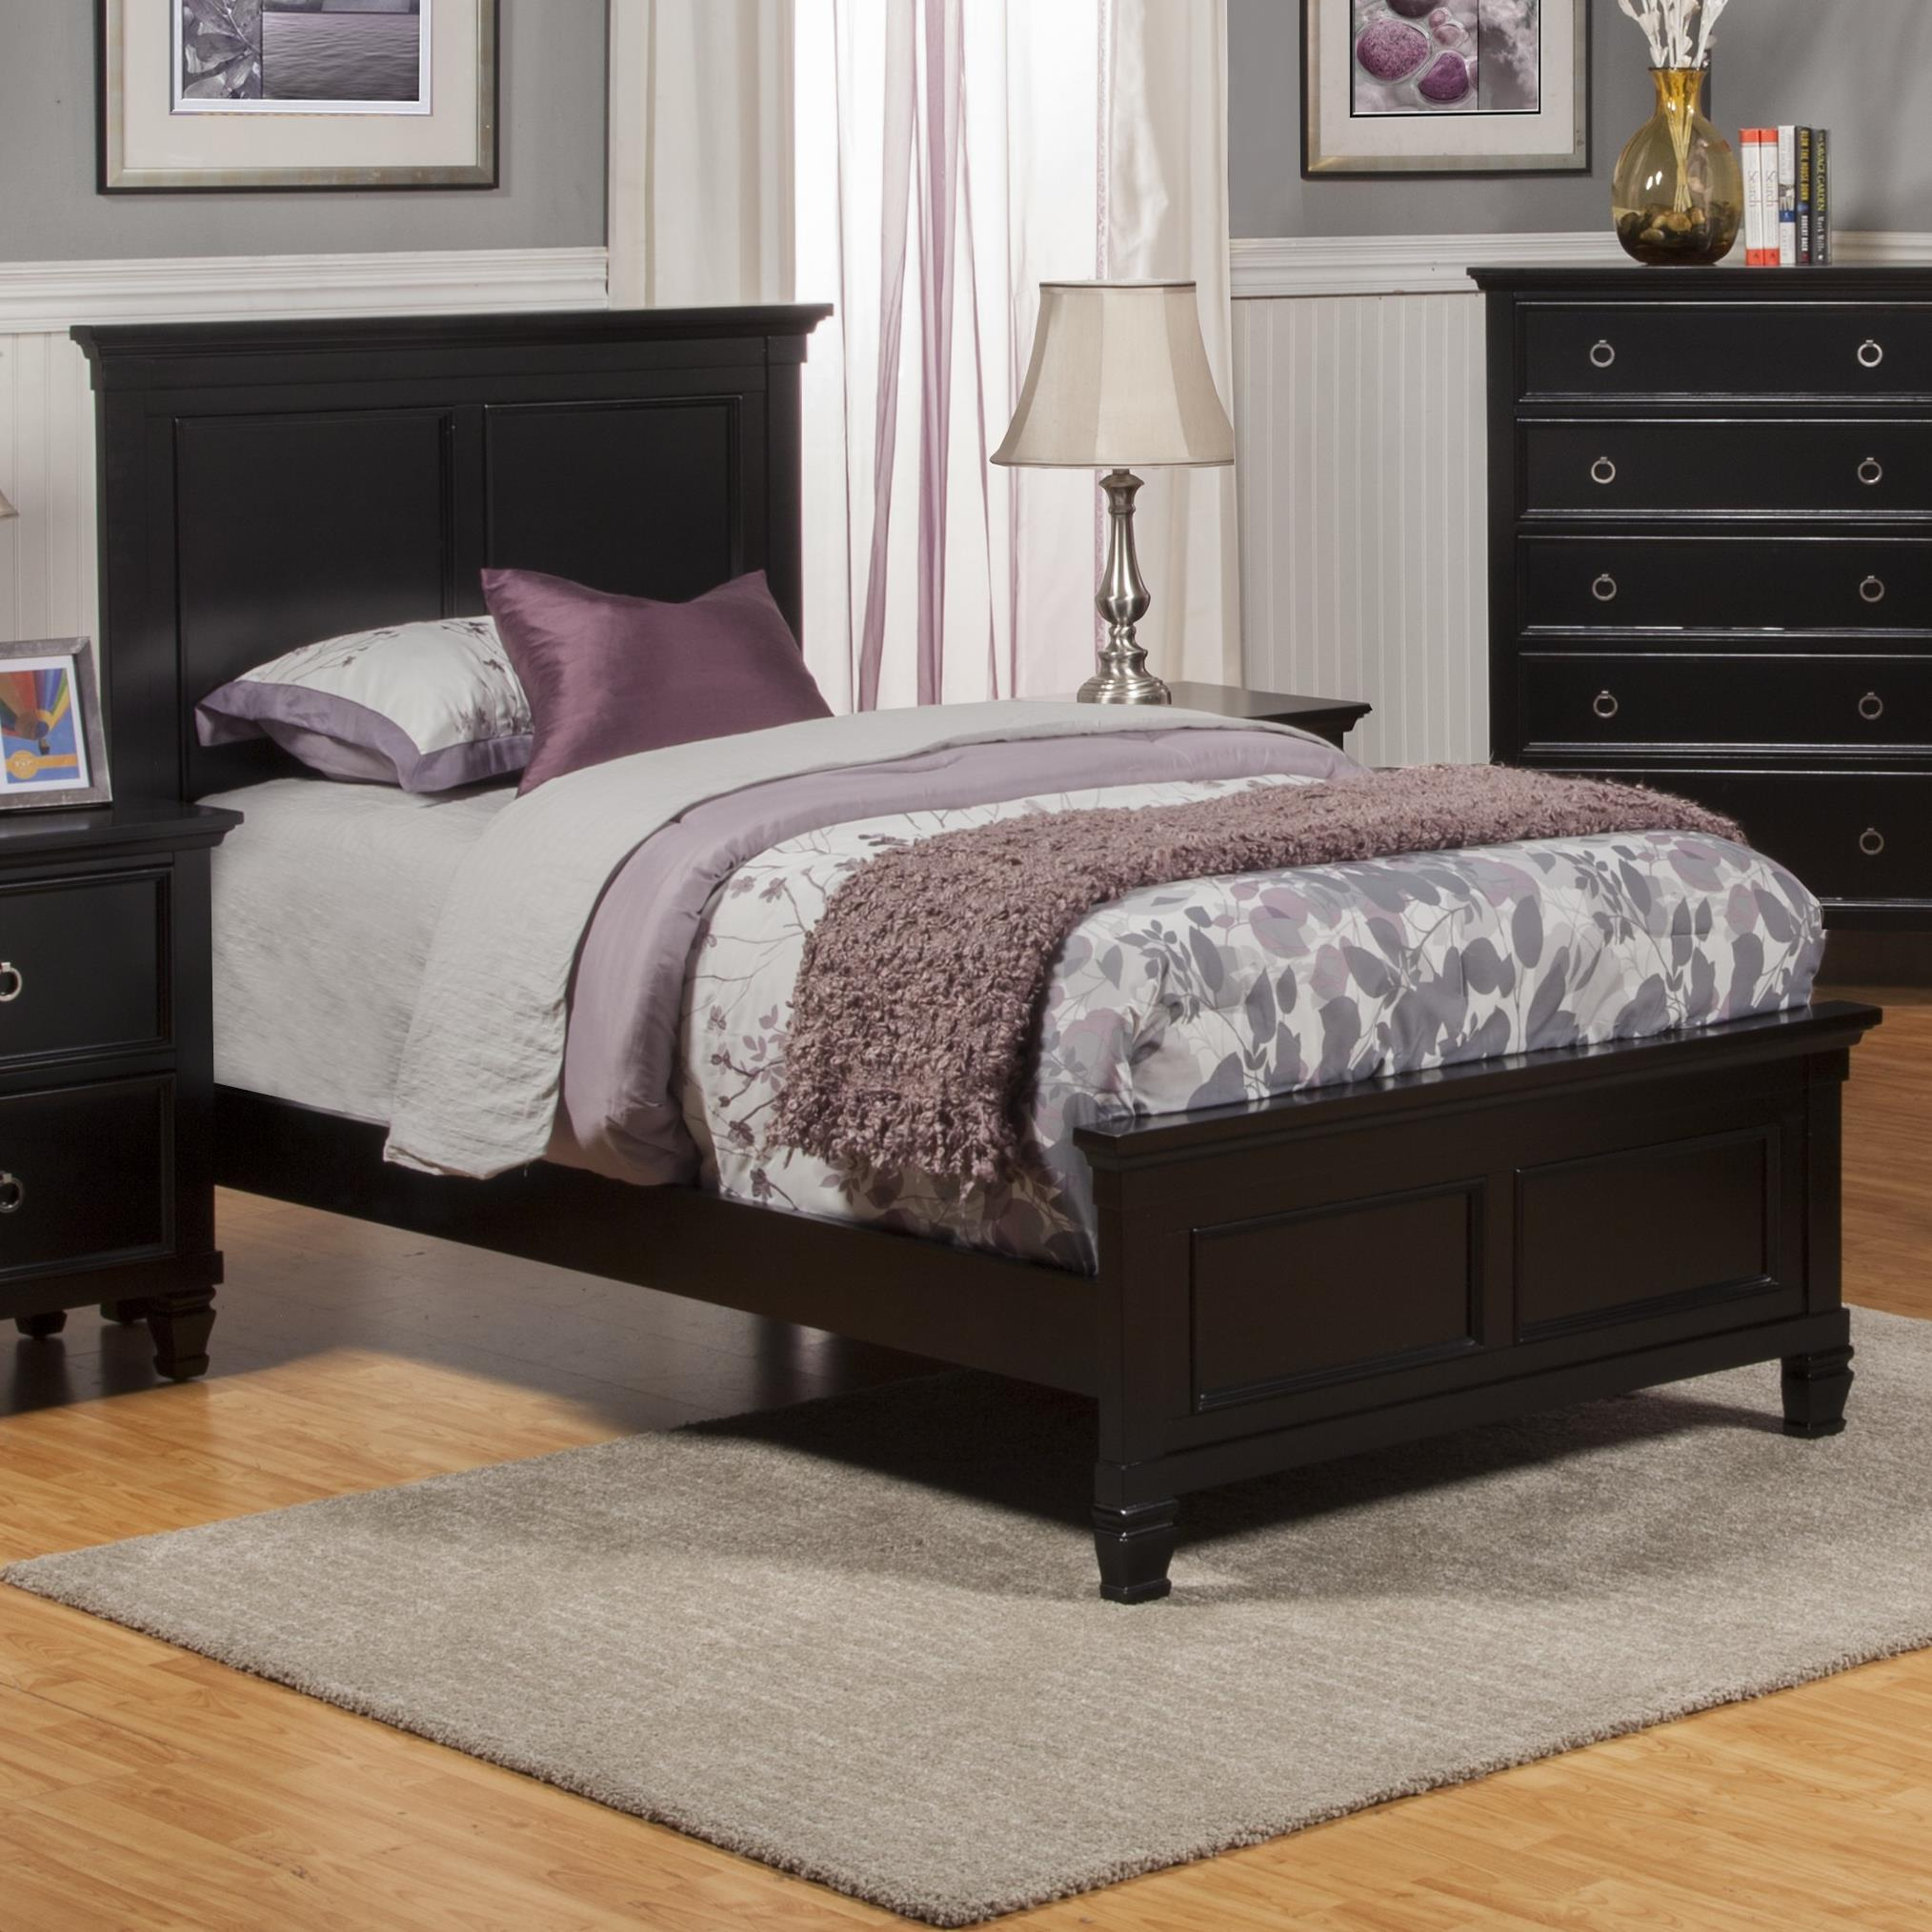 Tamarack Full Panel Bed by New Classic at Darvin Furniture